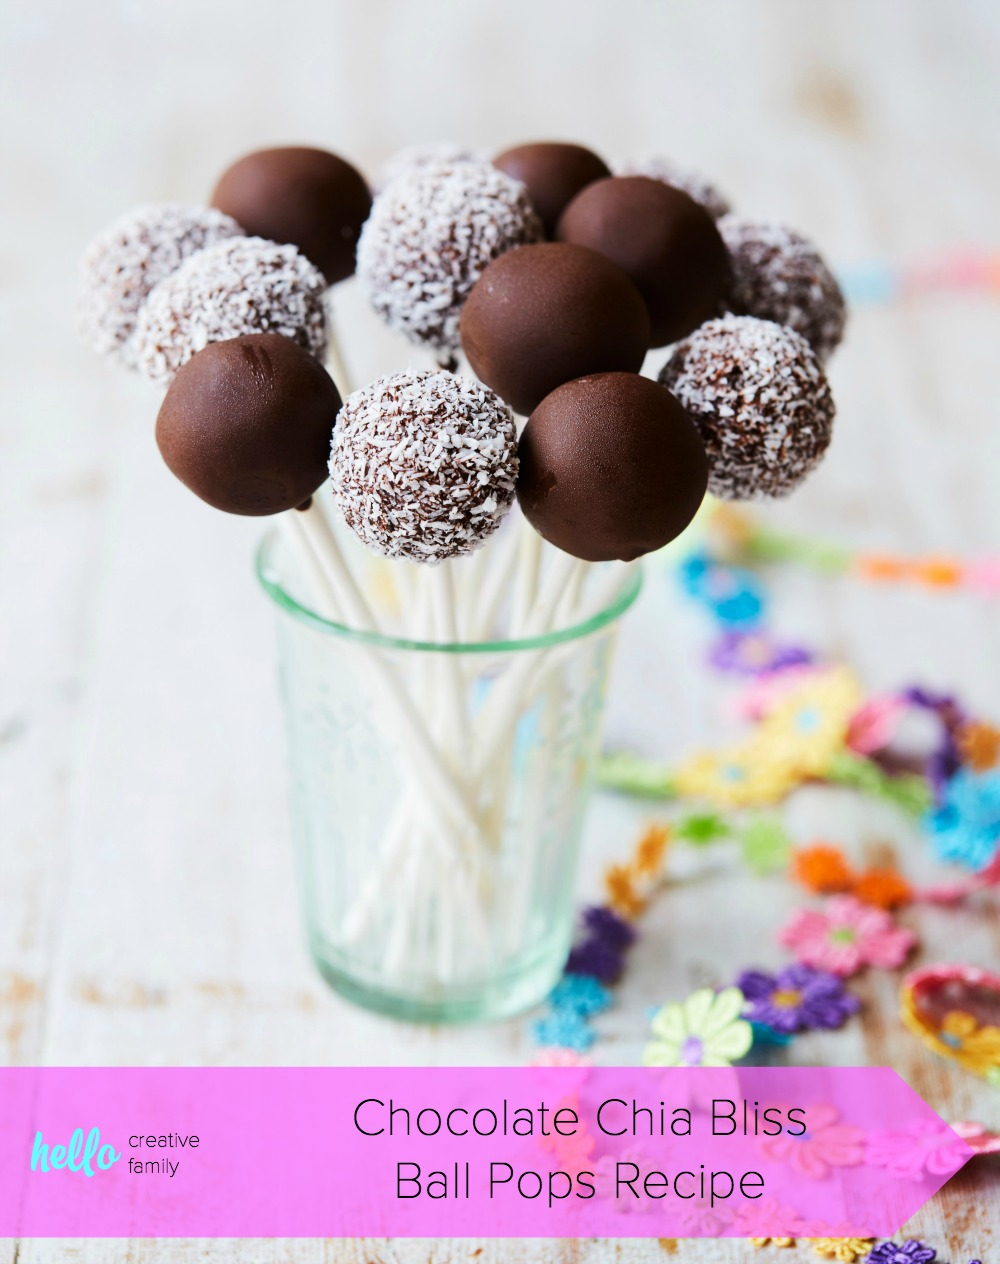 This healthy Chocolate Chia Bliss Ball Pops Recipe is vegan, gluten-free, nut free and DELICIOUS! It's perfect for an easy, healthy birthday dessert idea and would be perfect for a nut-free school snack or treat! Recipe from the book The Wholesome Child. #Dessert #Recipe #GlutenFree #RealFood